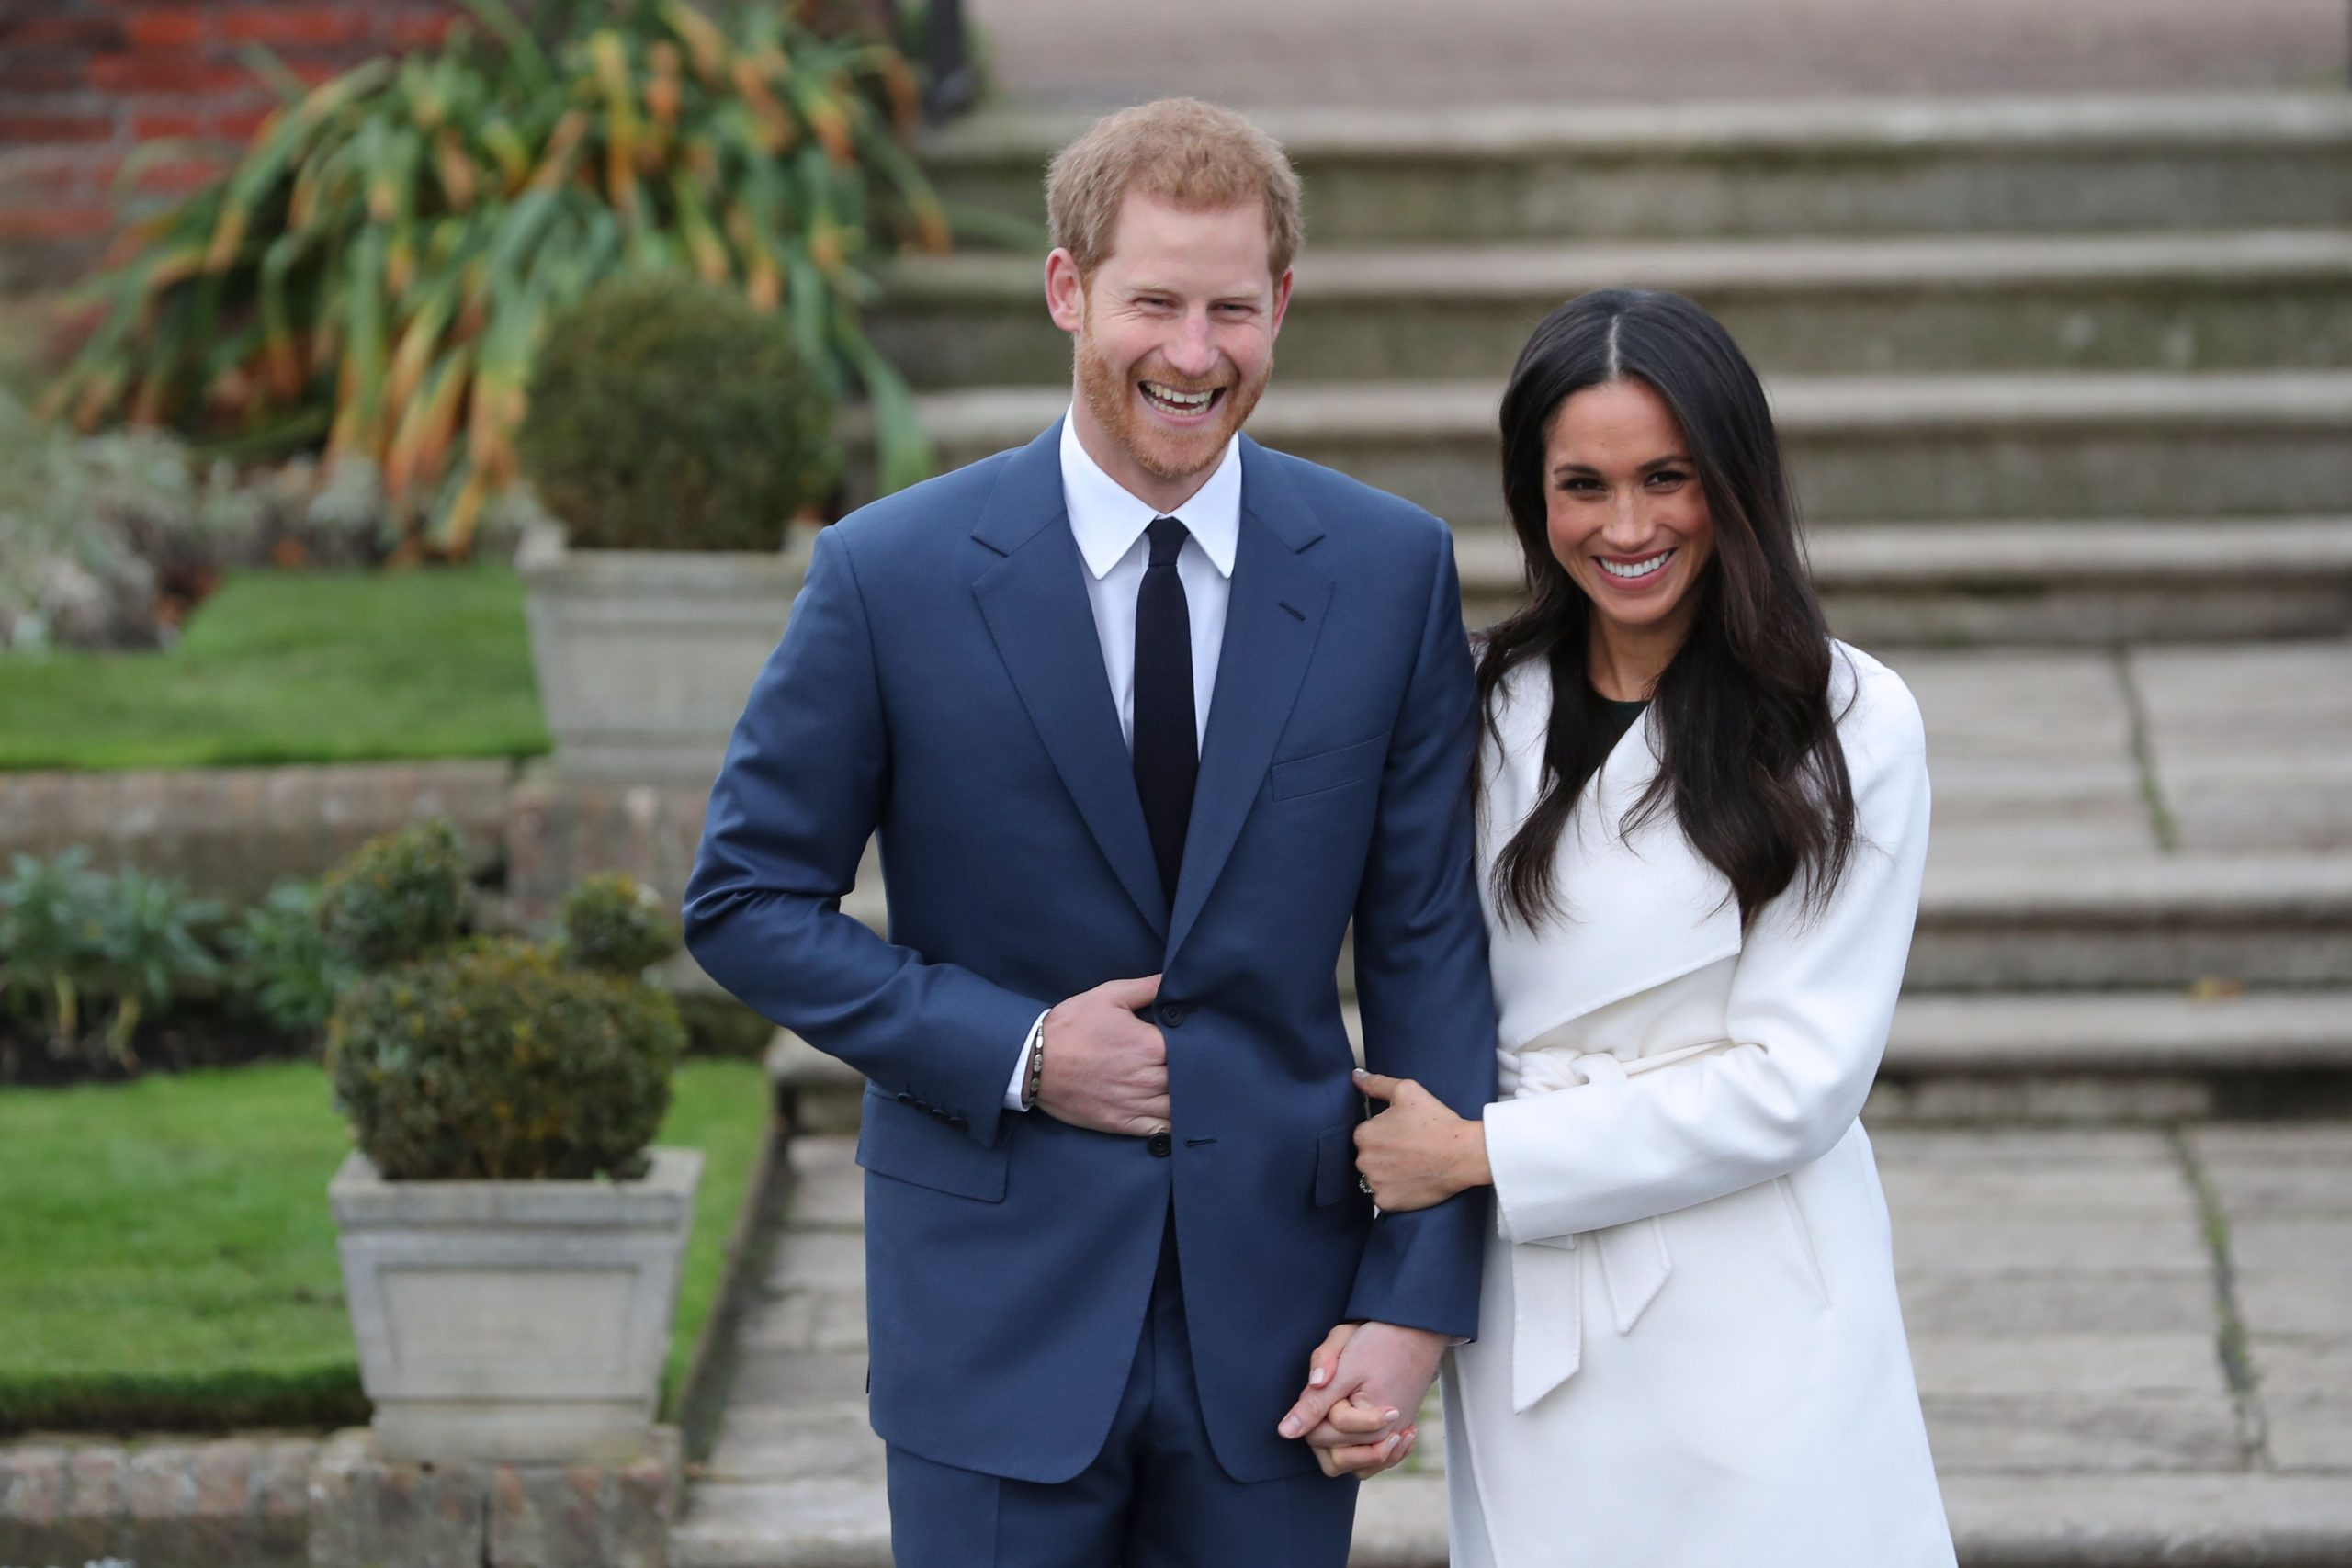 Prince Harry Laughs Meghan Markle Holds Hands Engagement Photocall Kensington Palace Gardens